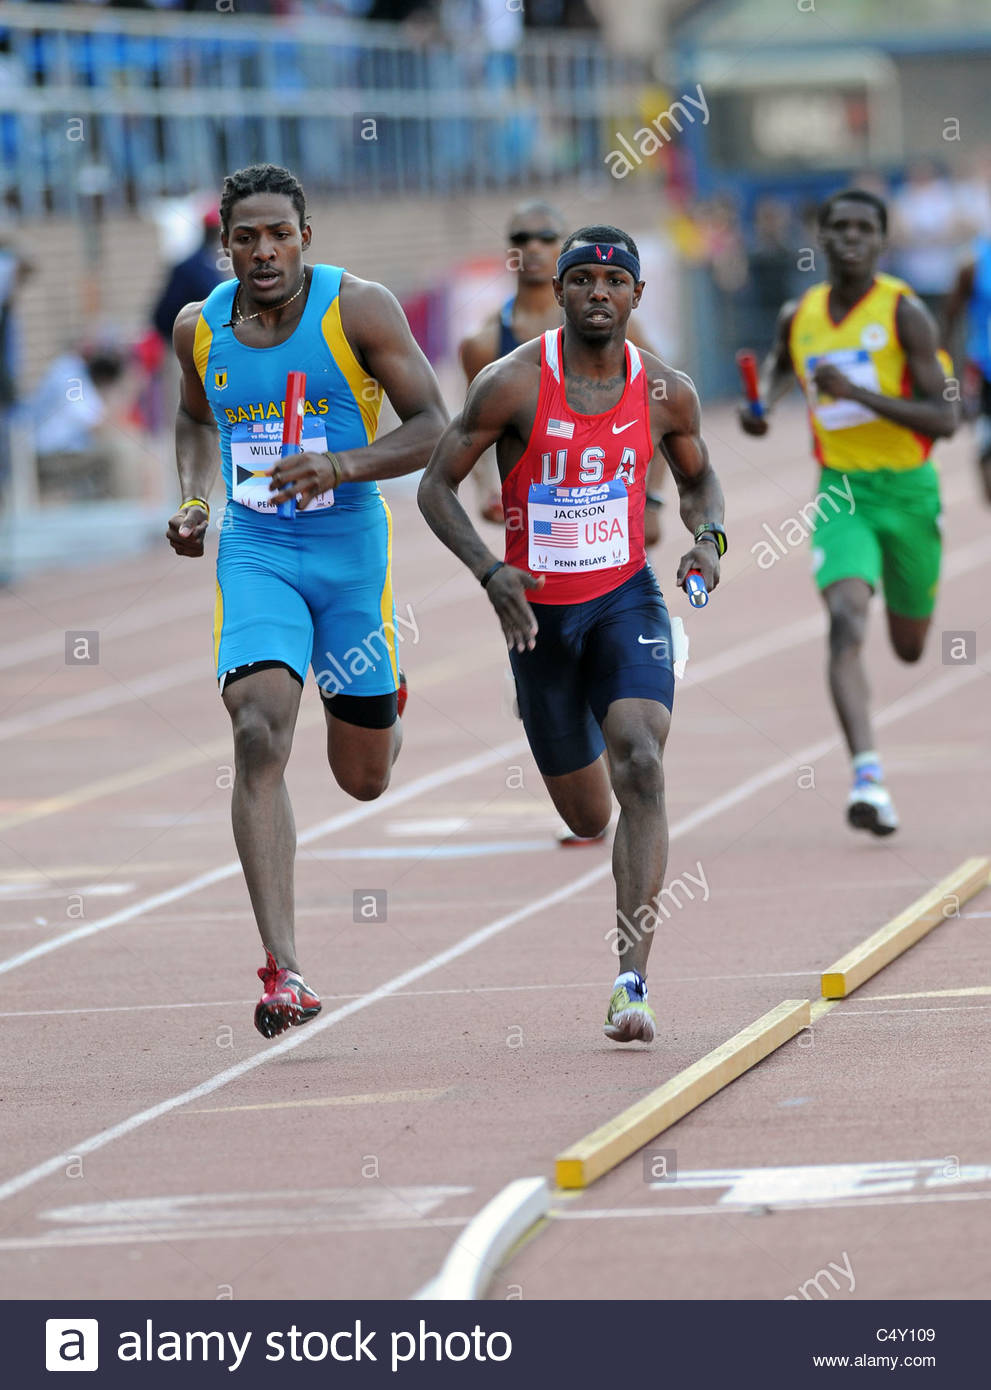 Andrae Willliams (l) from the Bahamas and Bershawn Jackson (r) from the USA at the 2011 Penn Relays 4x400 - Stock Image